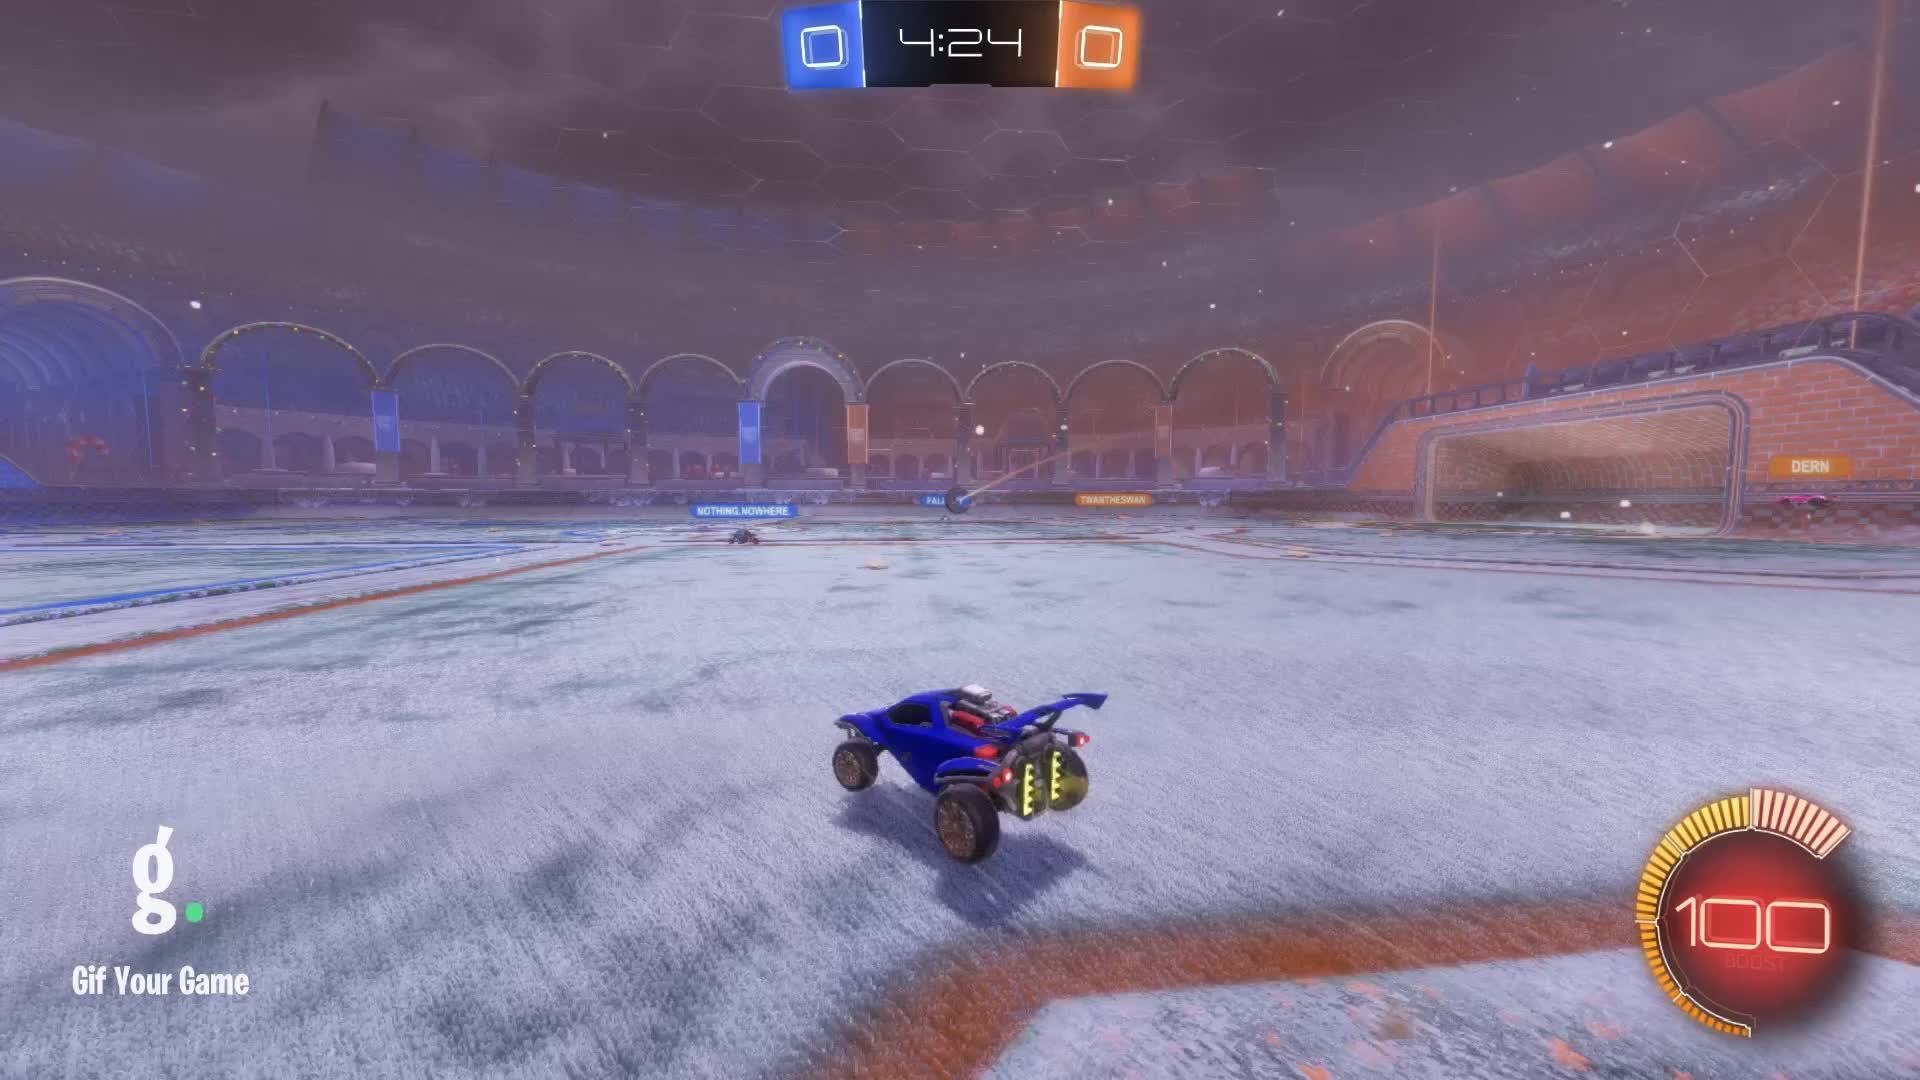 BLIZERWIZER, Gif Your Game, GifYourGame, Goal, Rocket League, RocketLeague, ⏱️ Goal 1: BLIZERWIZER GIFs